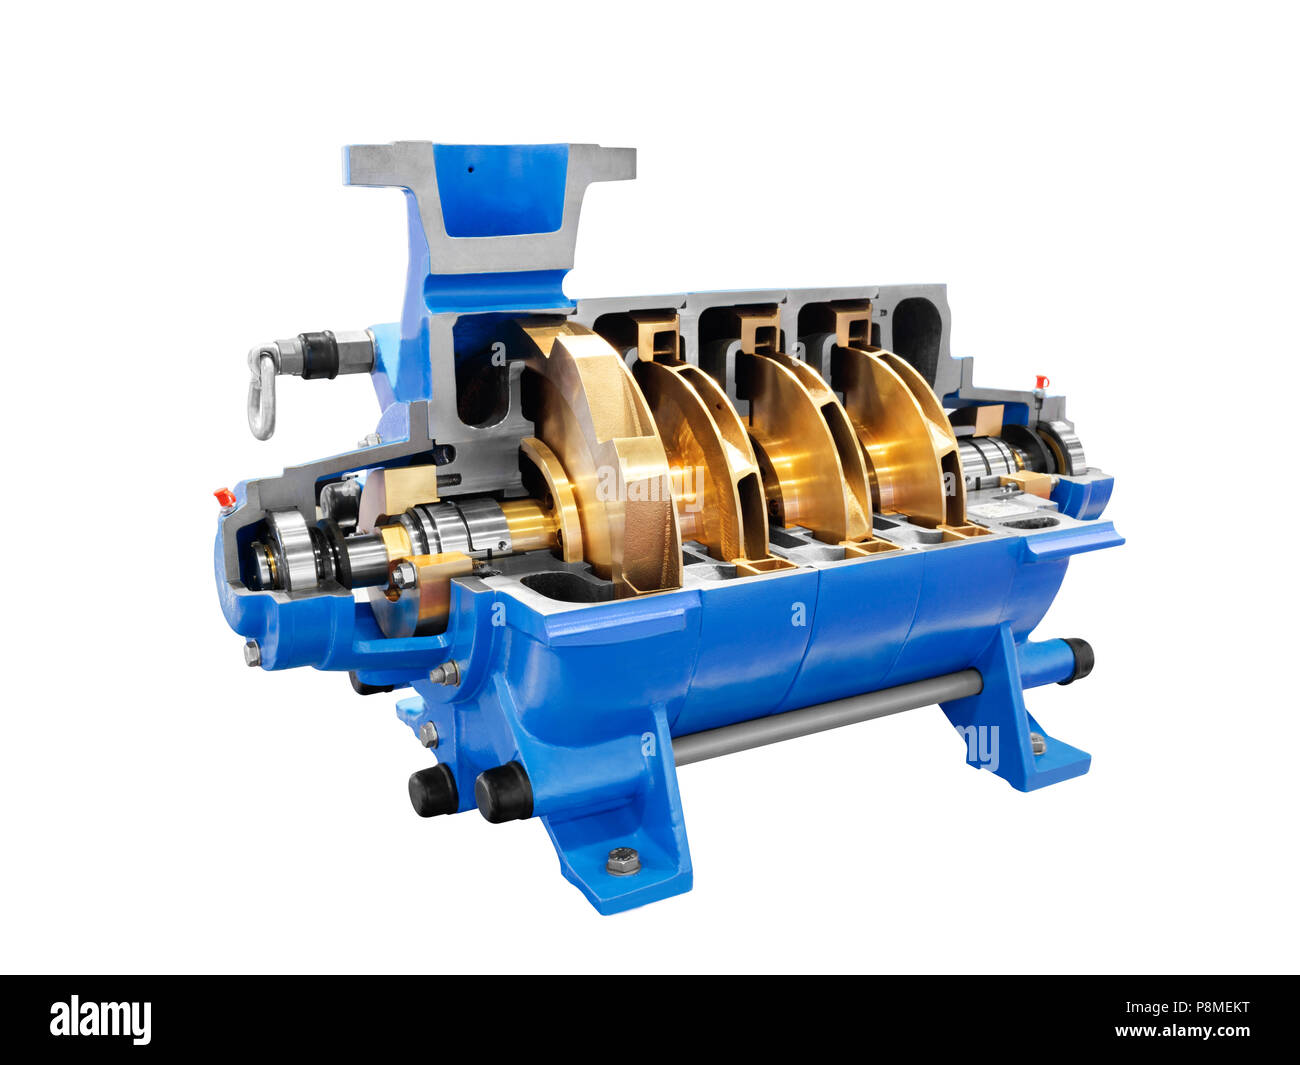 Multistage high pressure prepared pumpfor pumping of water, fuel, oil and oil products isolated on a white background. - Stock Image